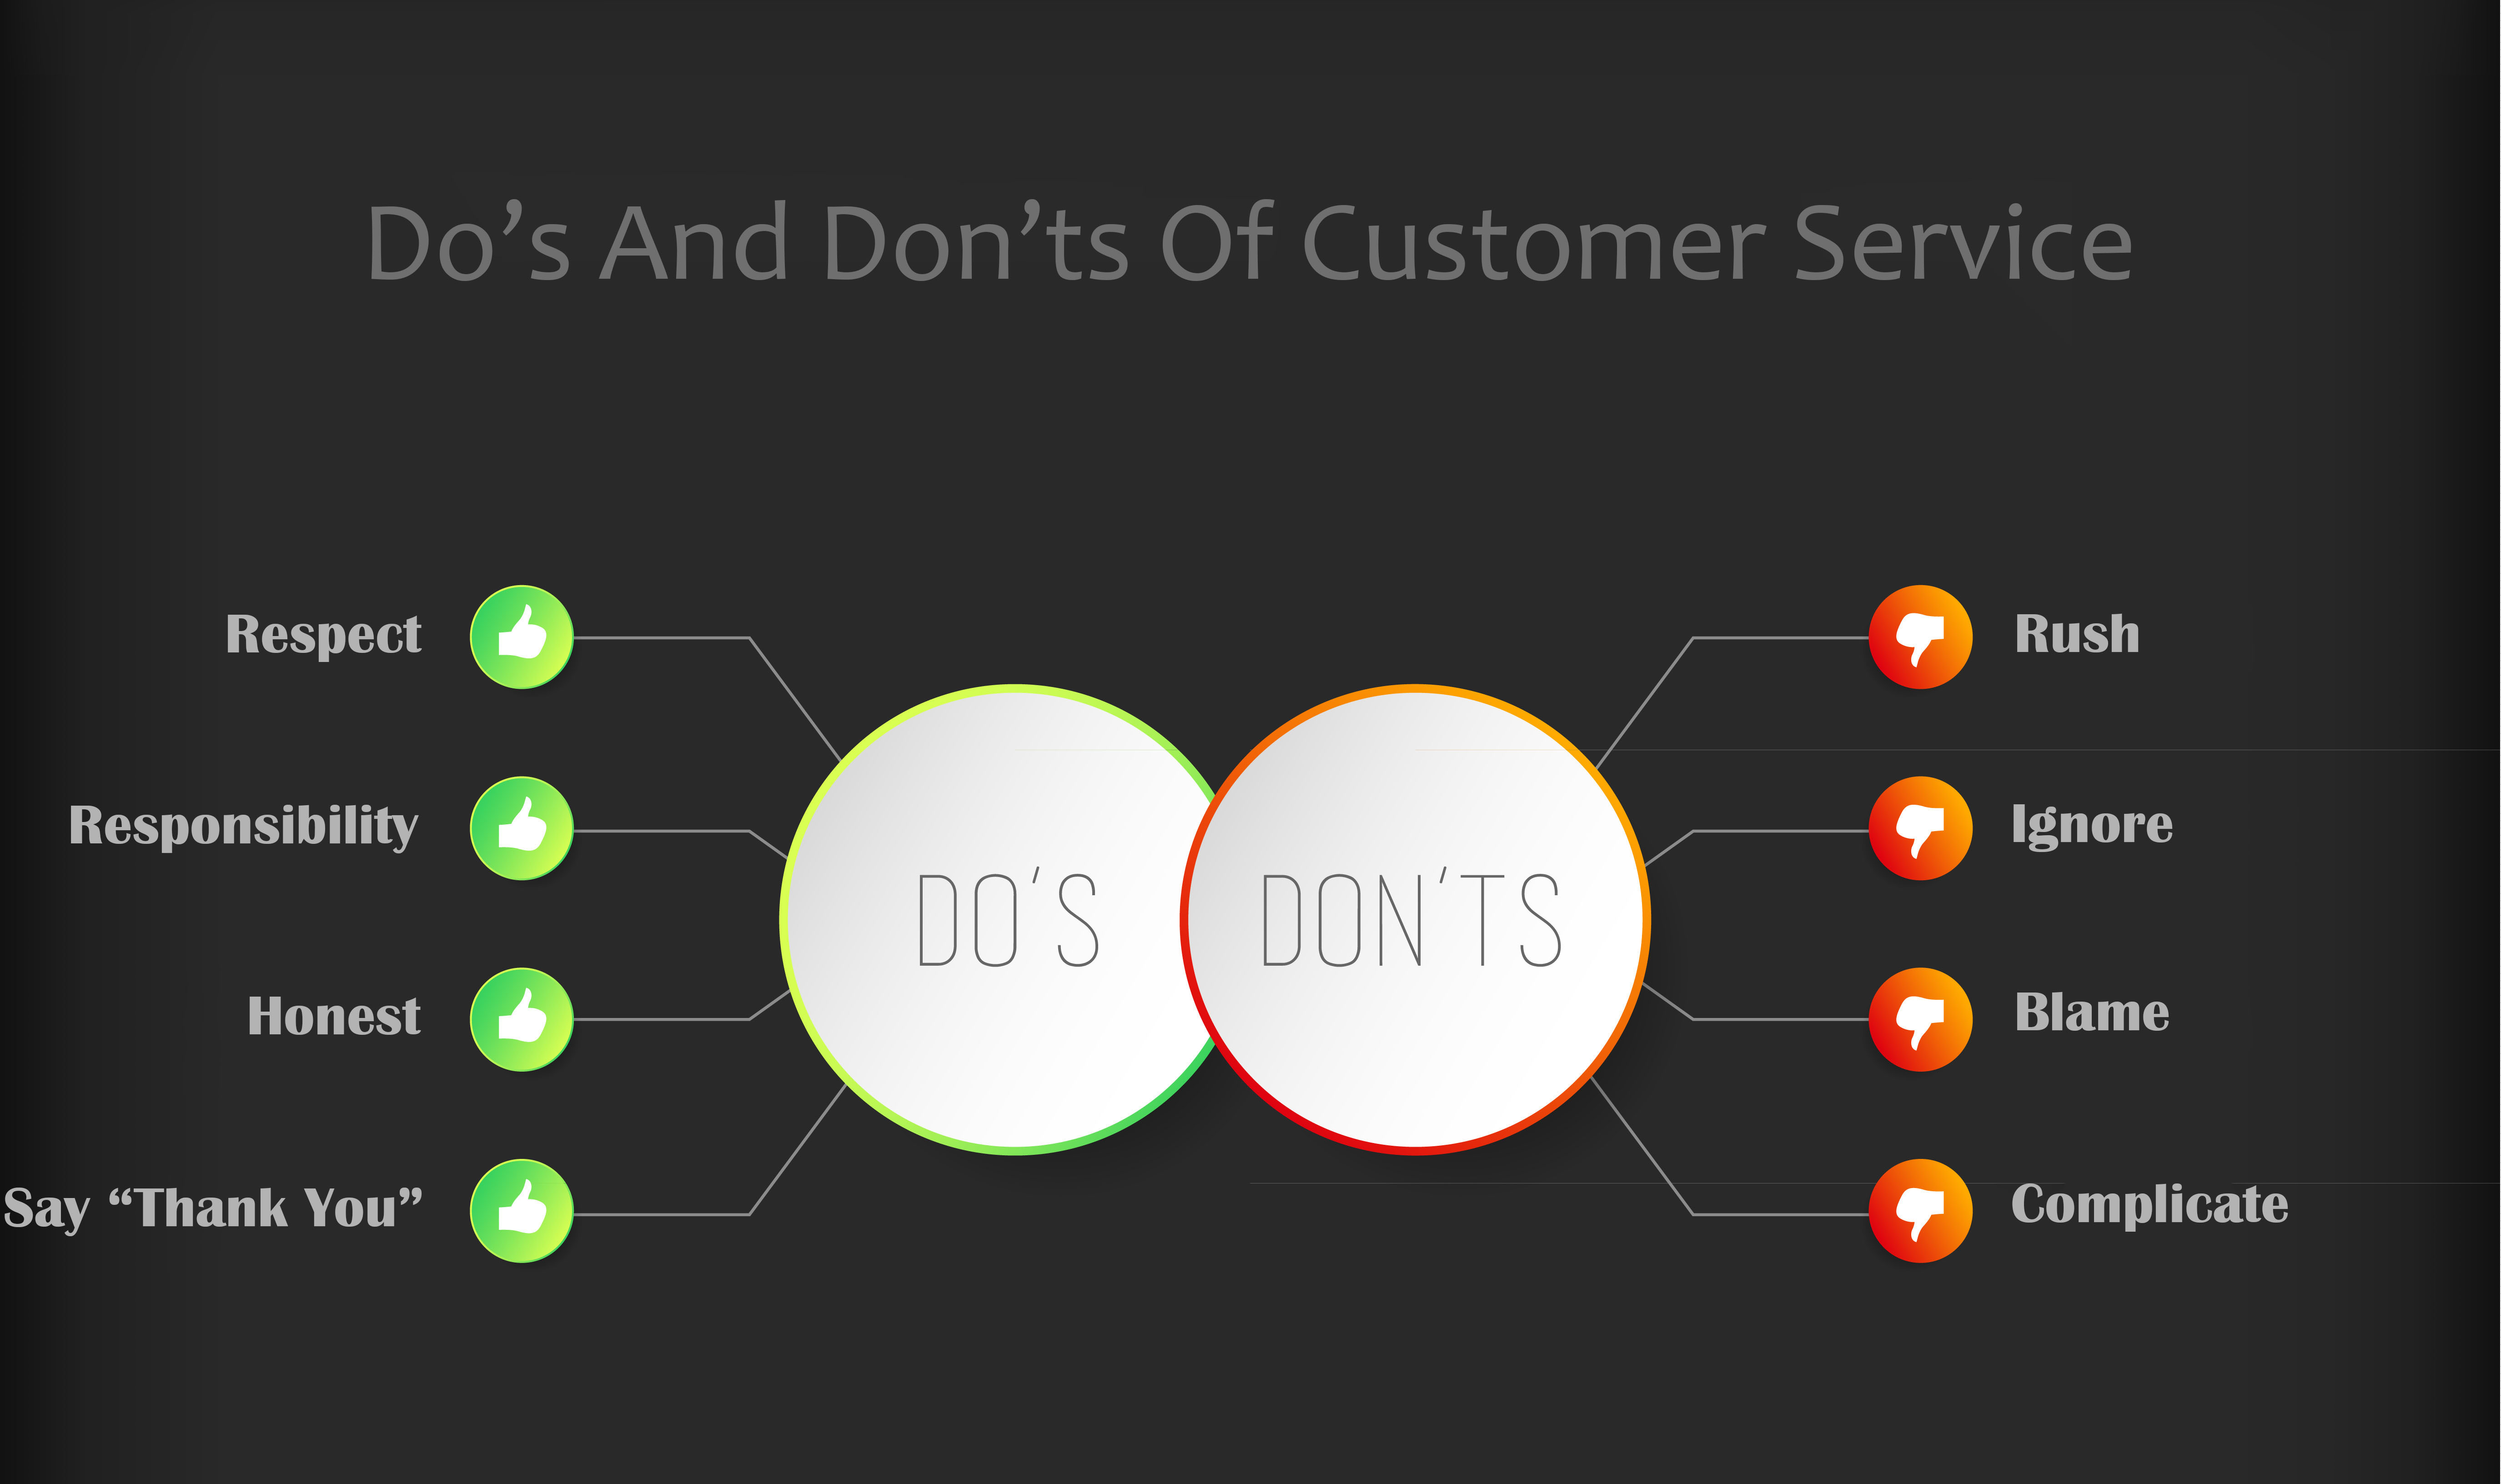 Do's And Don'ts Of Customer Service1